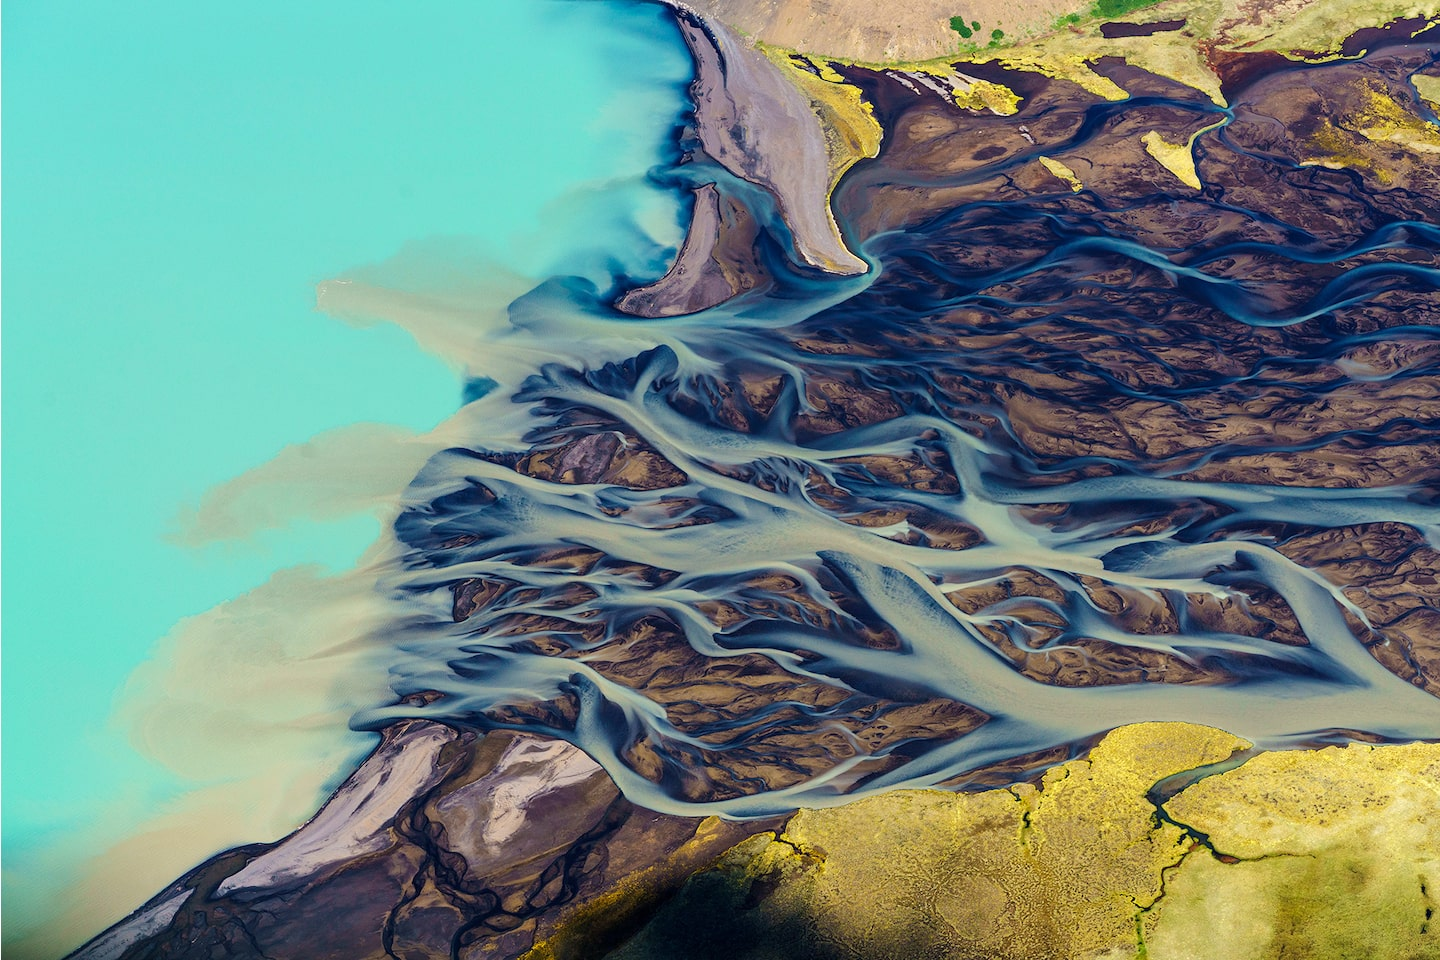 pall stefansson sony alpha 7RII icelandic landscape river delta